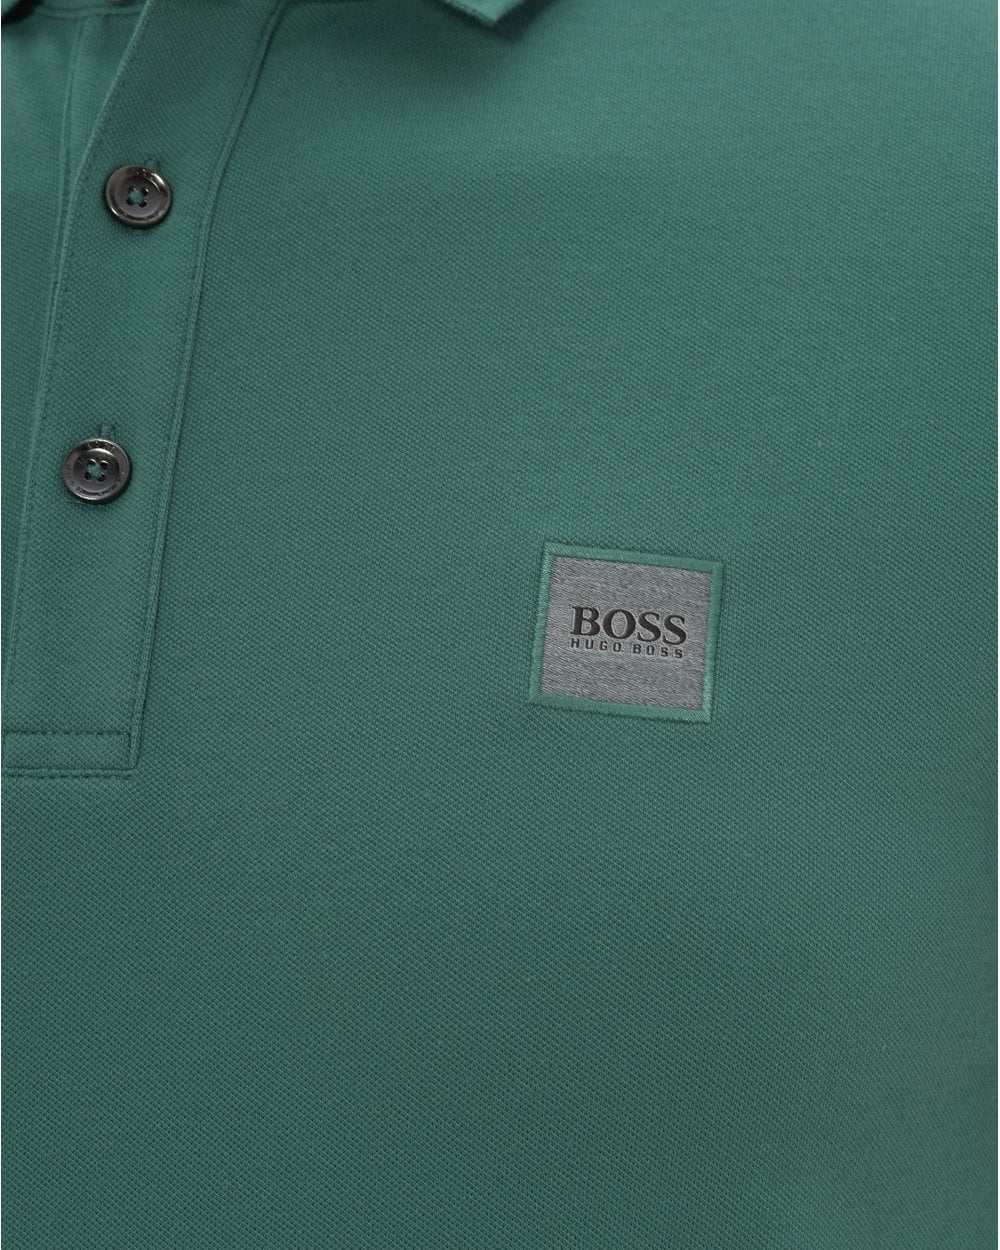 1e8afd8b3 BOSS Mens Passenger Slim Fit Polo, Green Polo Shirt